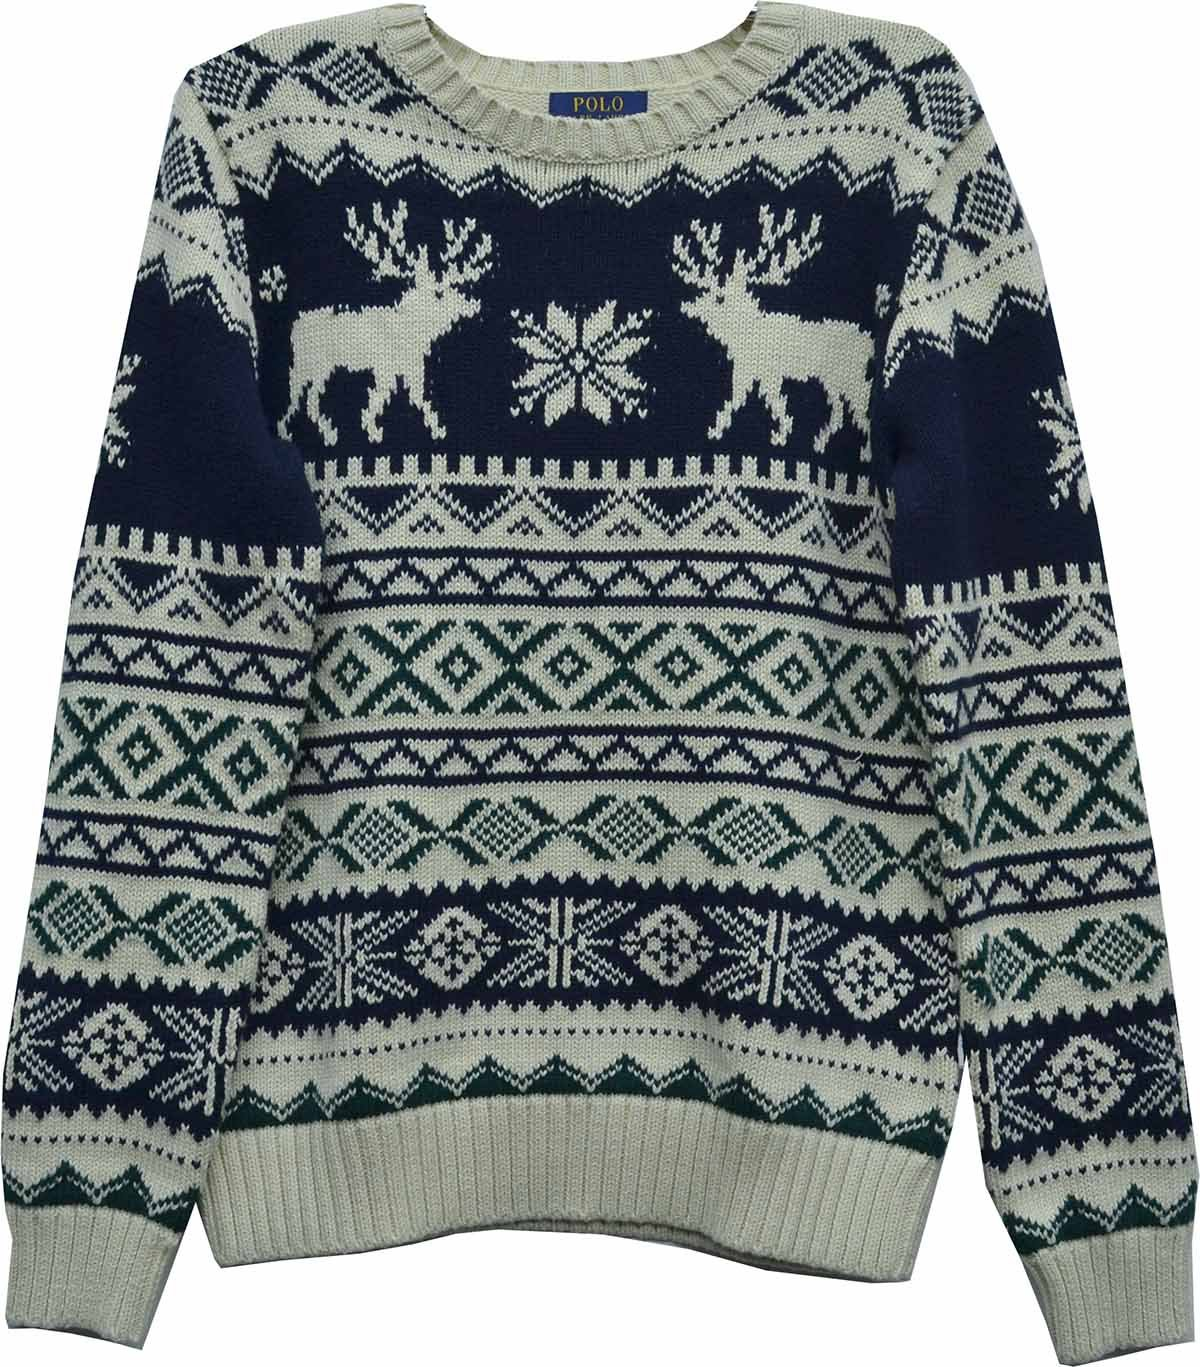 Polo Ralph Lauren Boy's Holiday Sweater Cafeaulait X-Large (18-20) by Polo Ralph Lauren